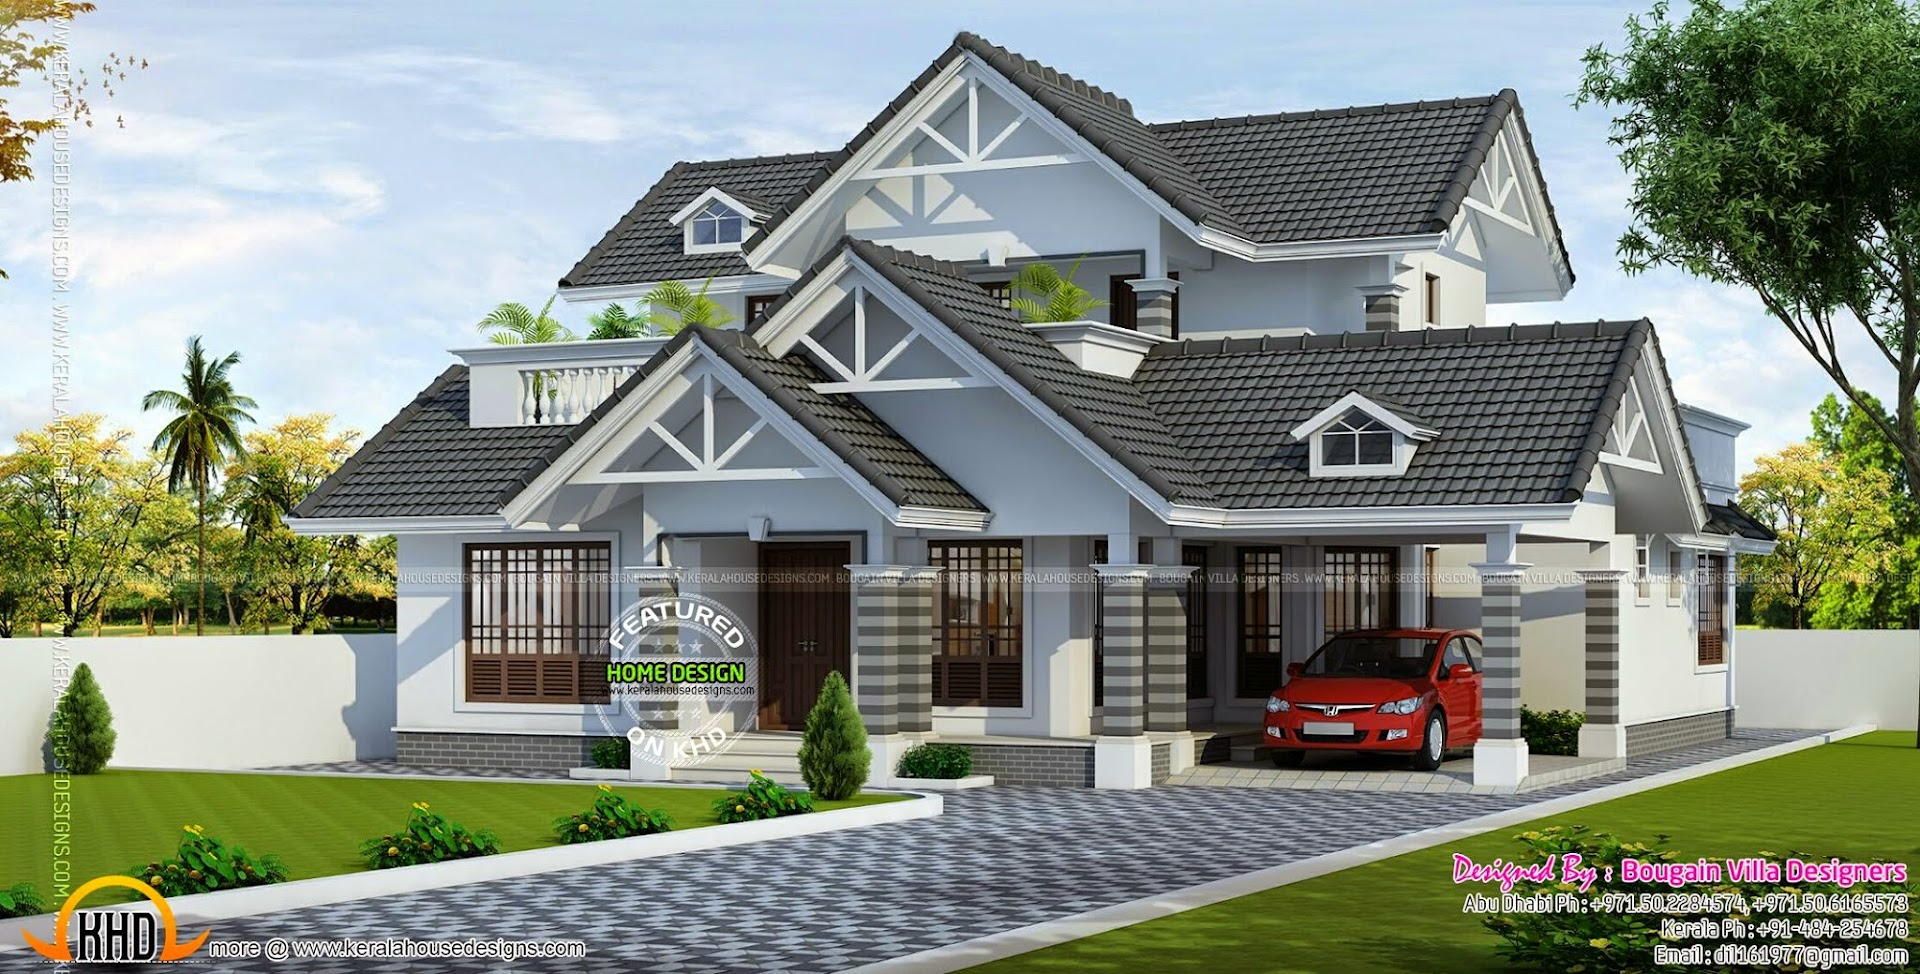 2480 square feet elegant home design kerala kerala home for Elegant home designs